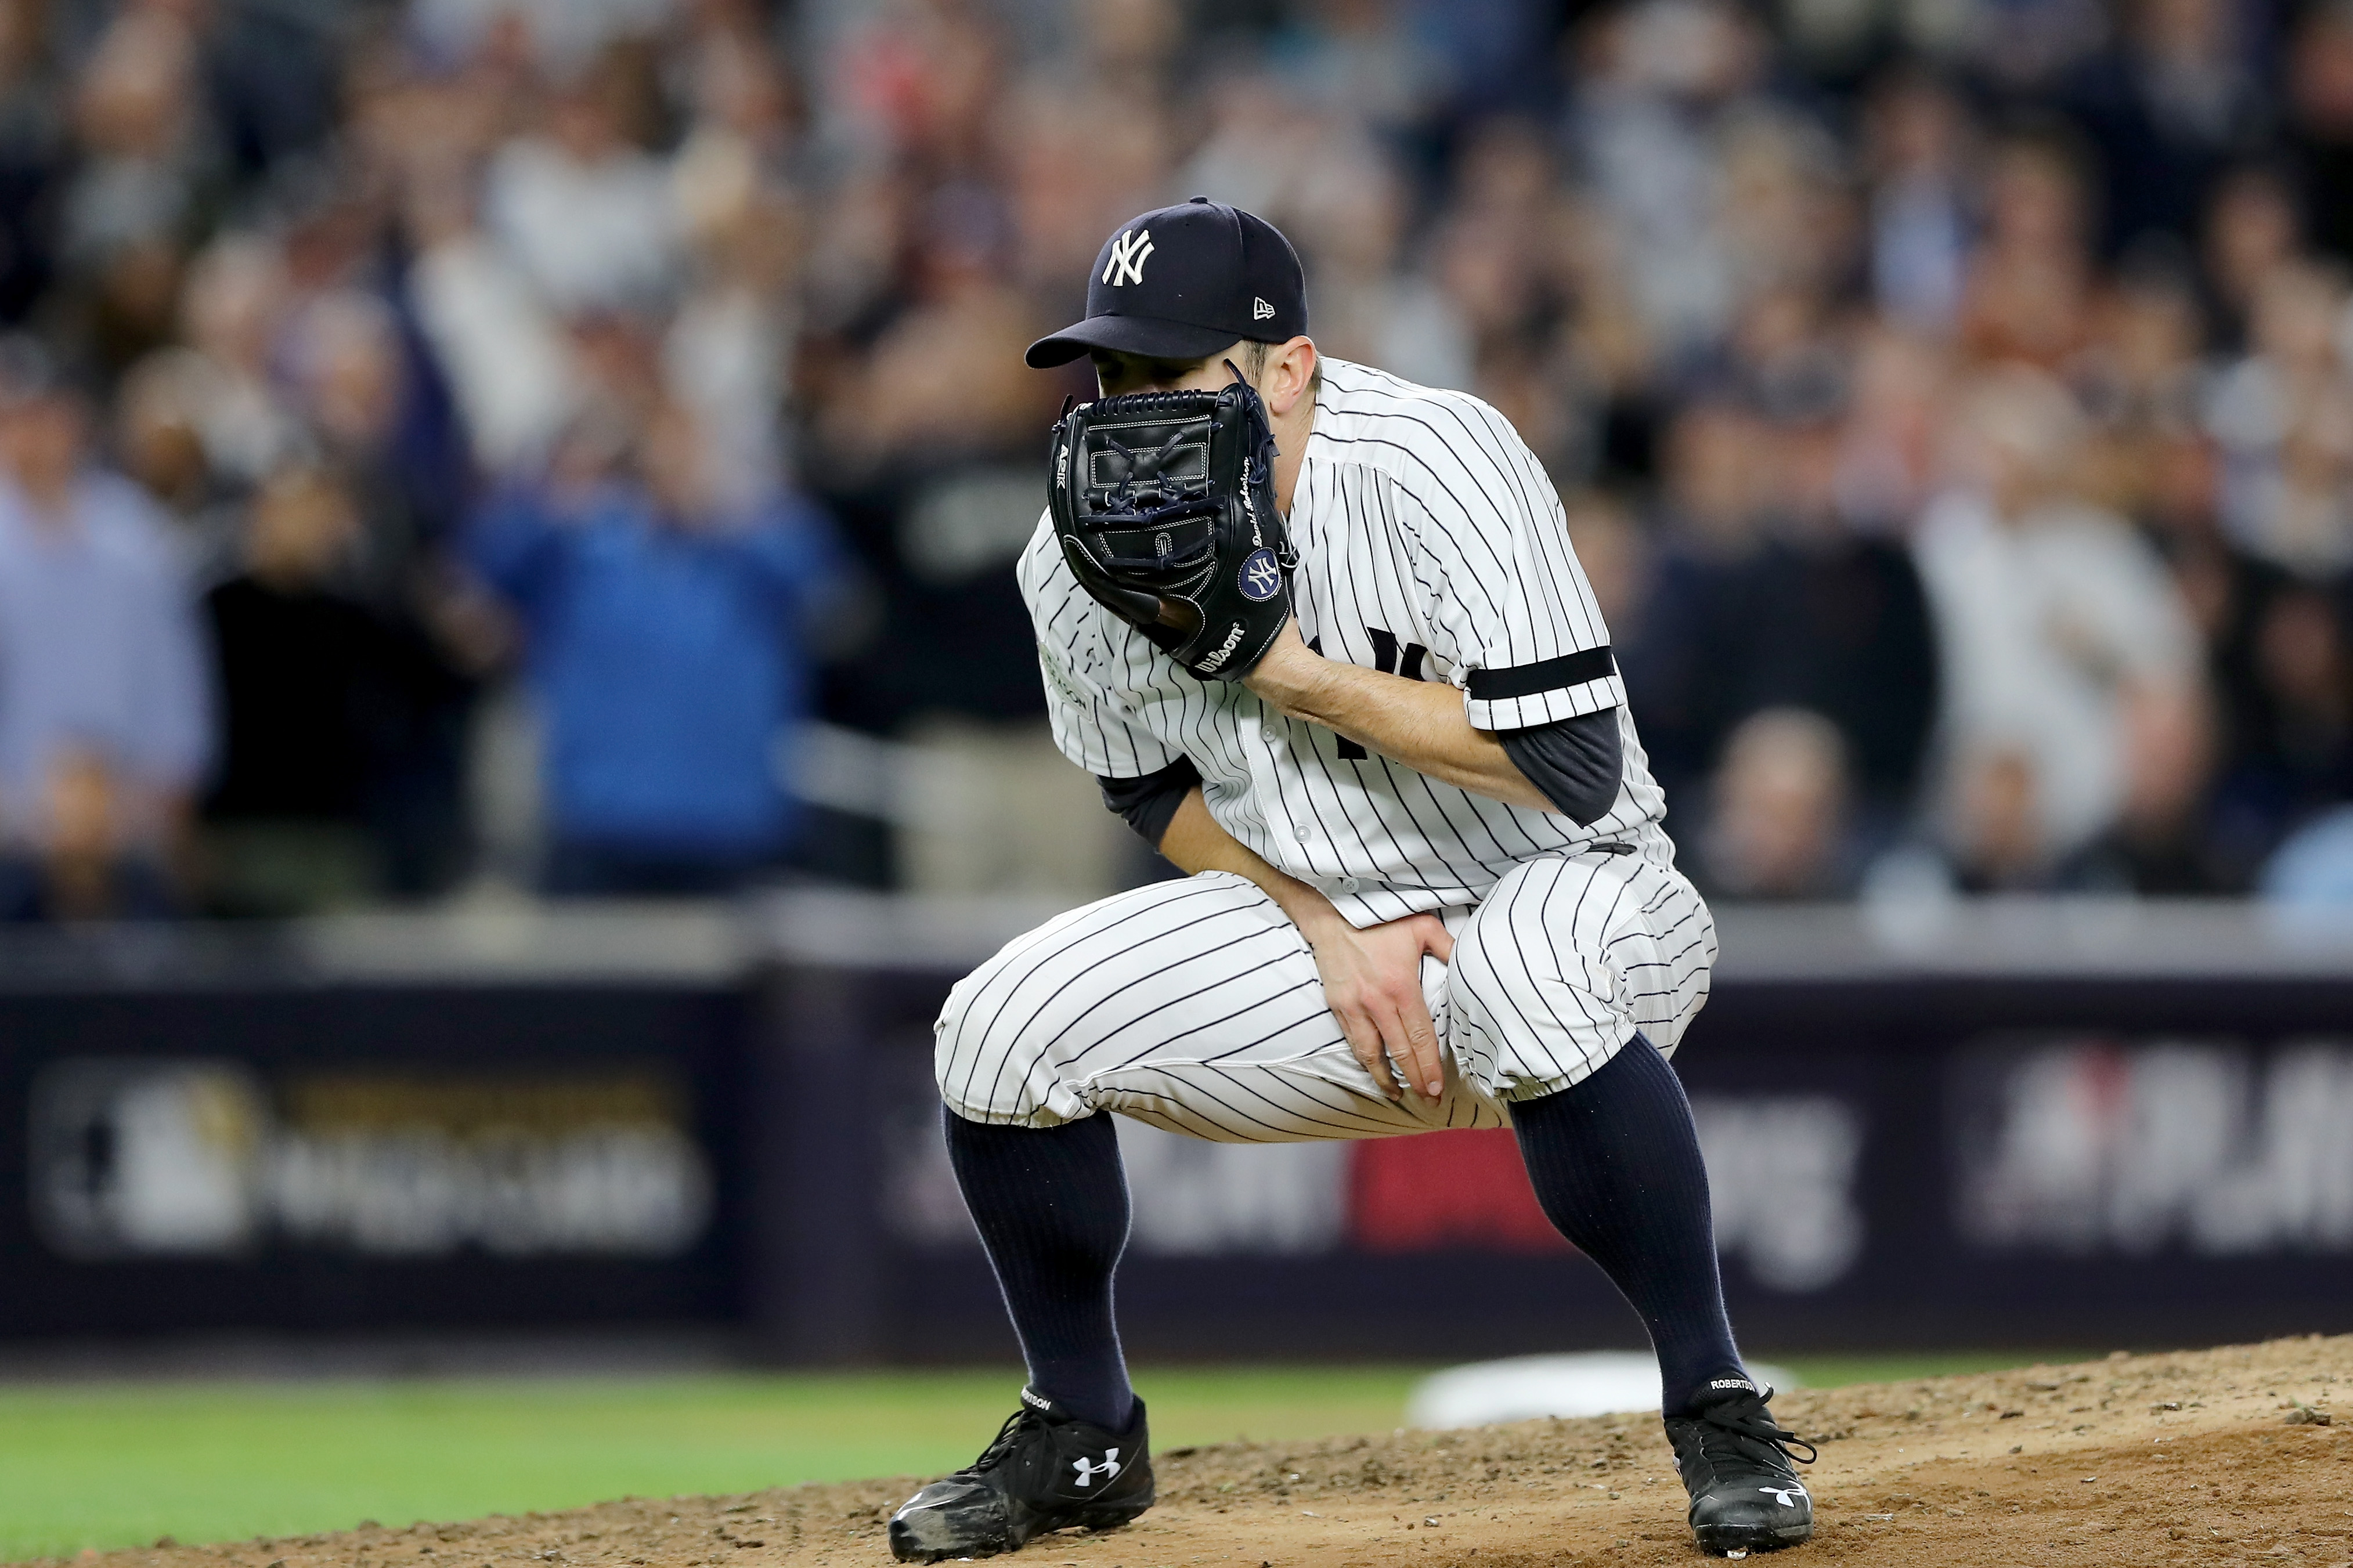 David Robertson's reaction to this groin shot says it all